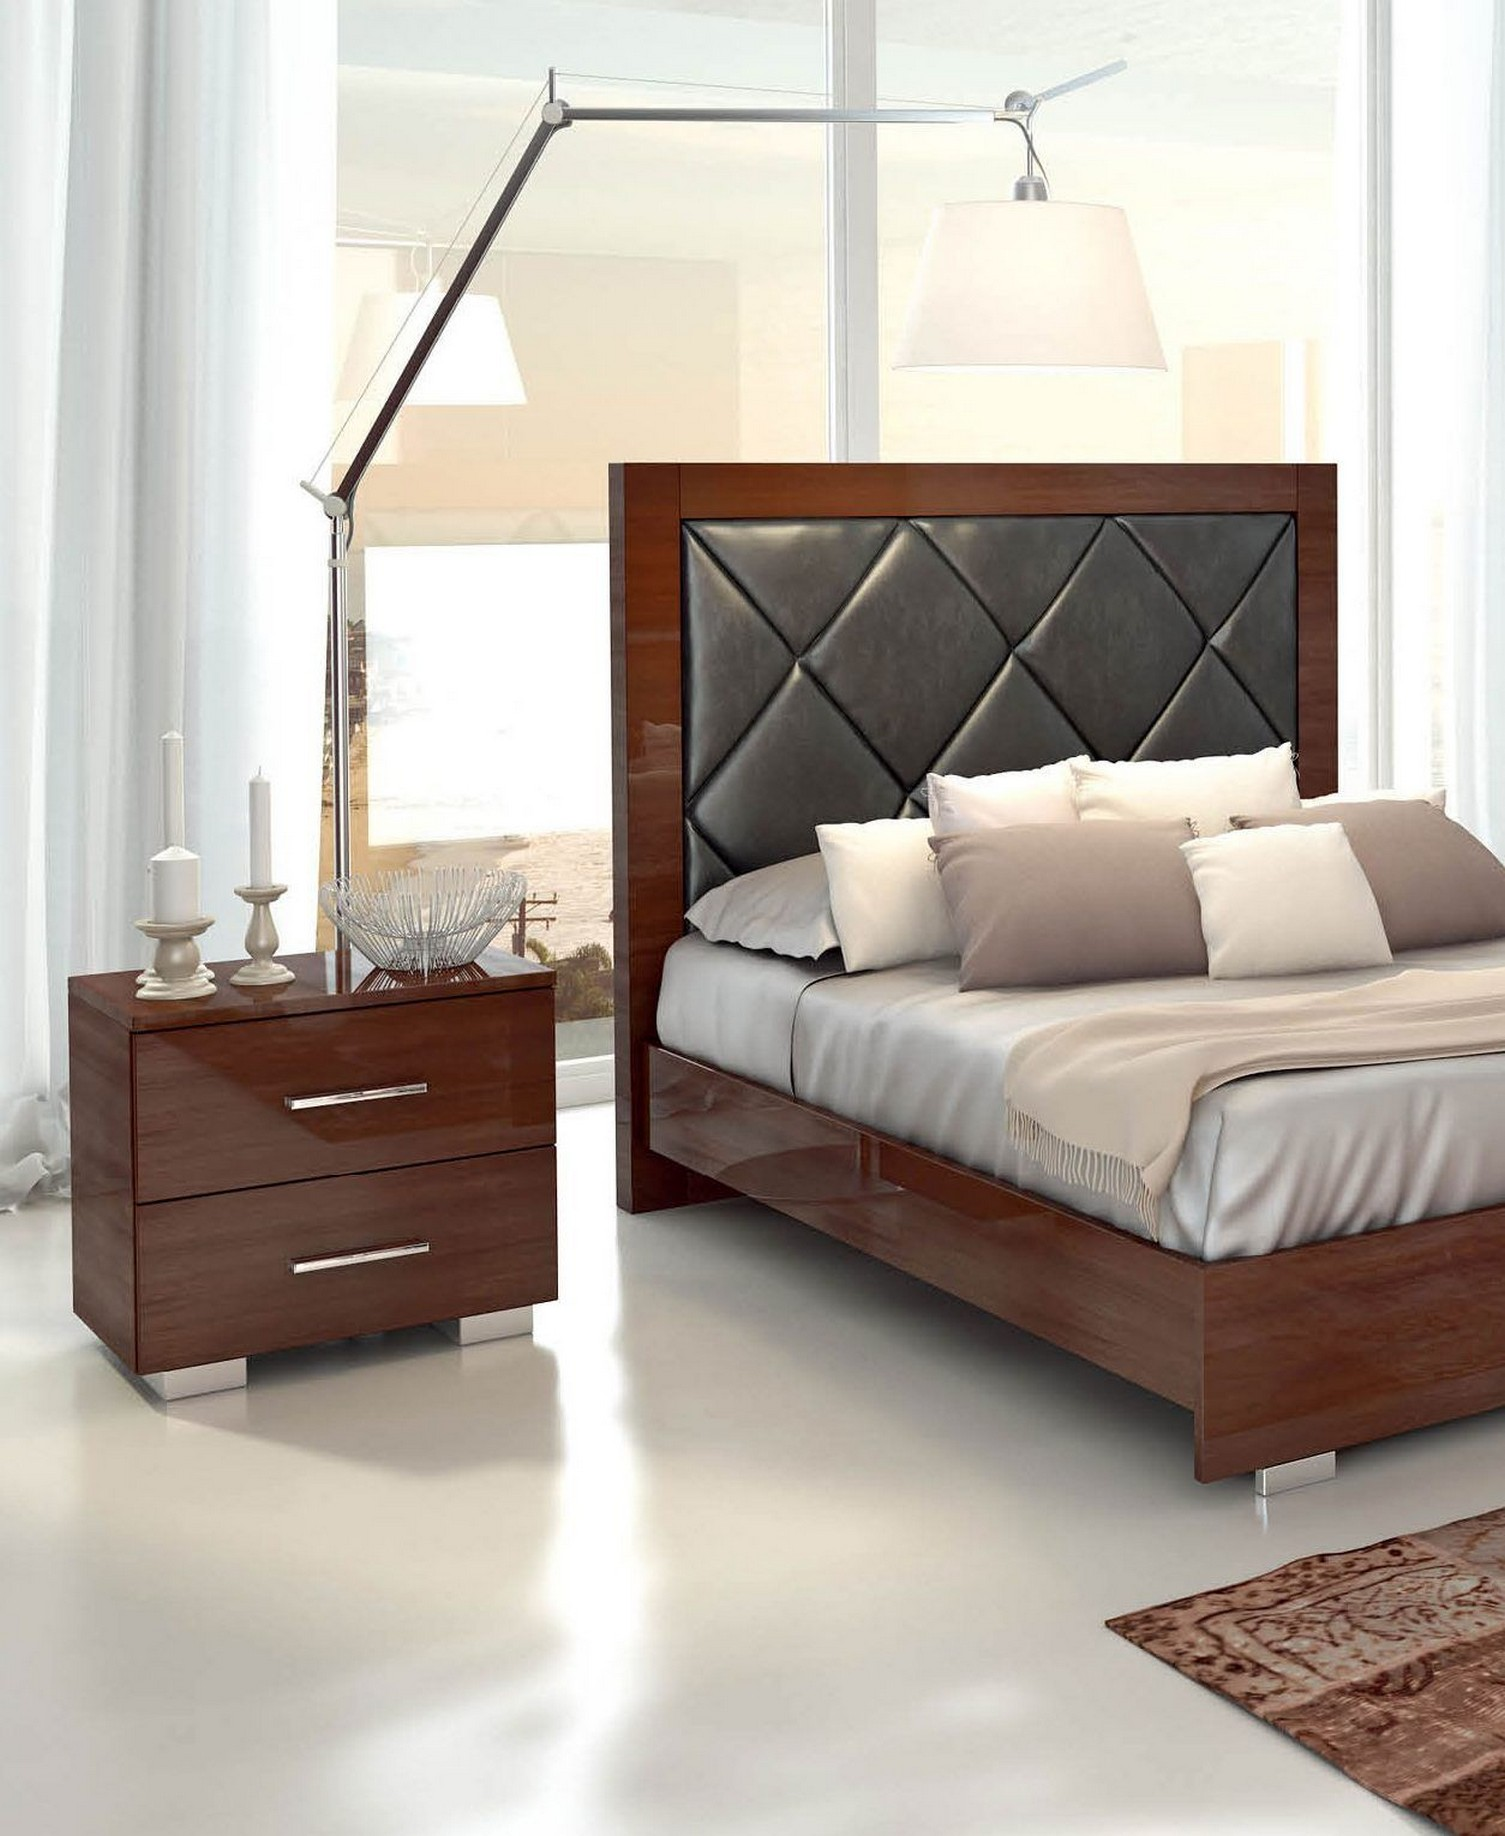 64 Rustic Bedroom Furniture How to Look Elegance Home Decor 64